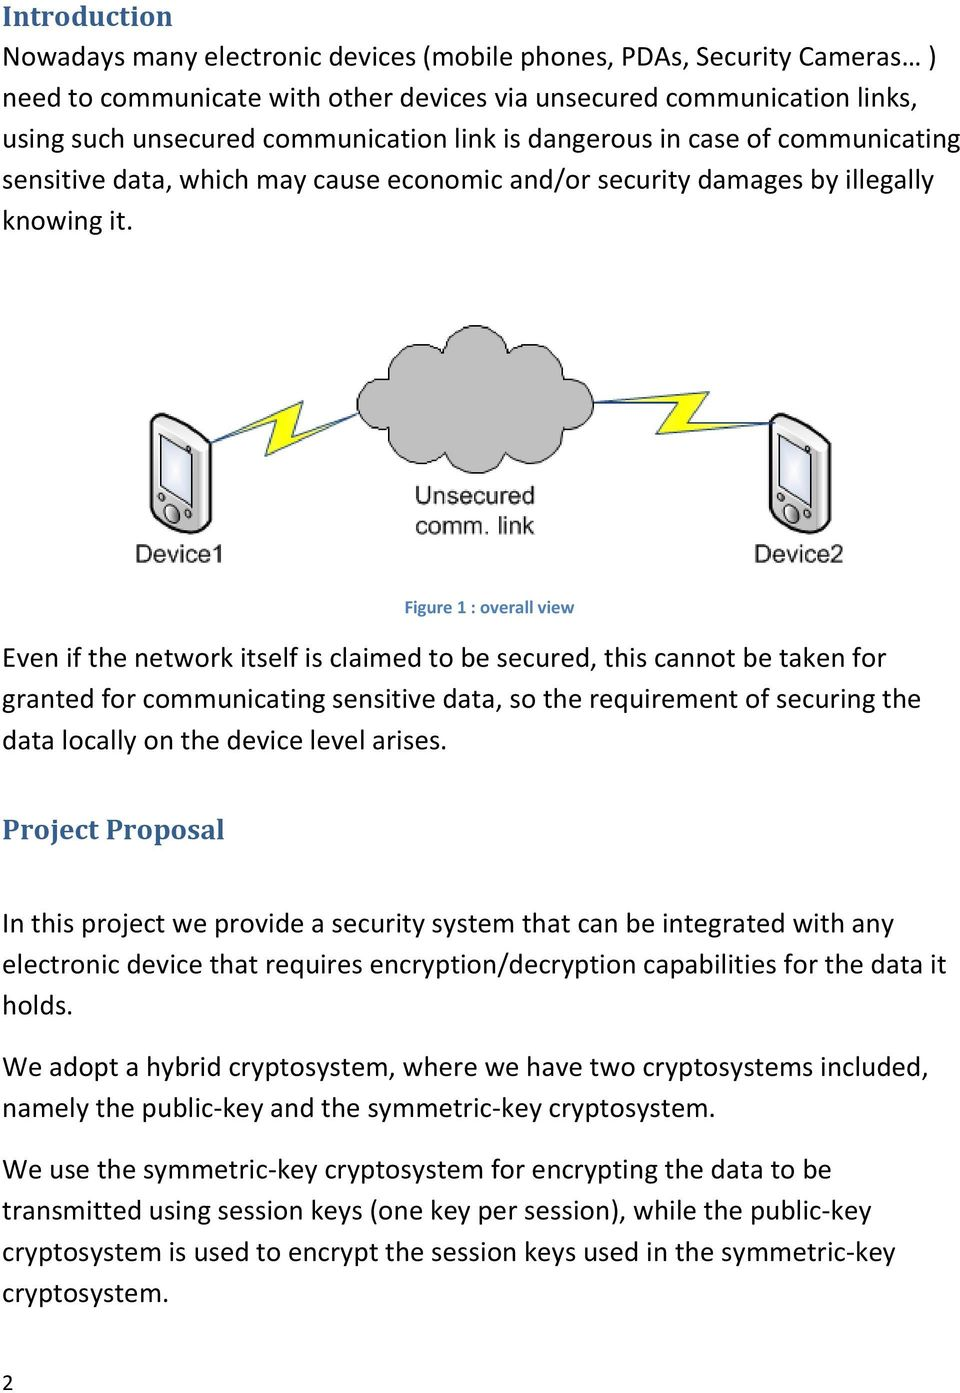 Figure 1 : overall view Even if the network itself is claimed to be secured, this cannot be taken for granted for communicating sensitive data, so the requirement of securing the data locally on the